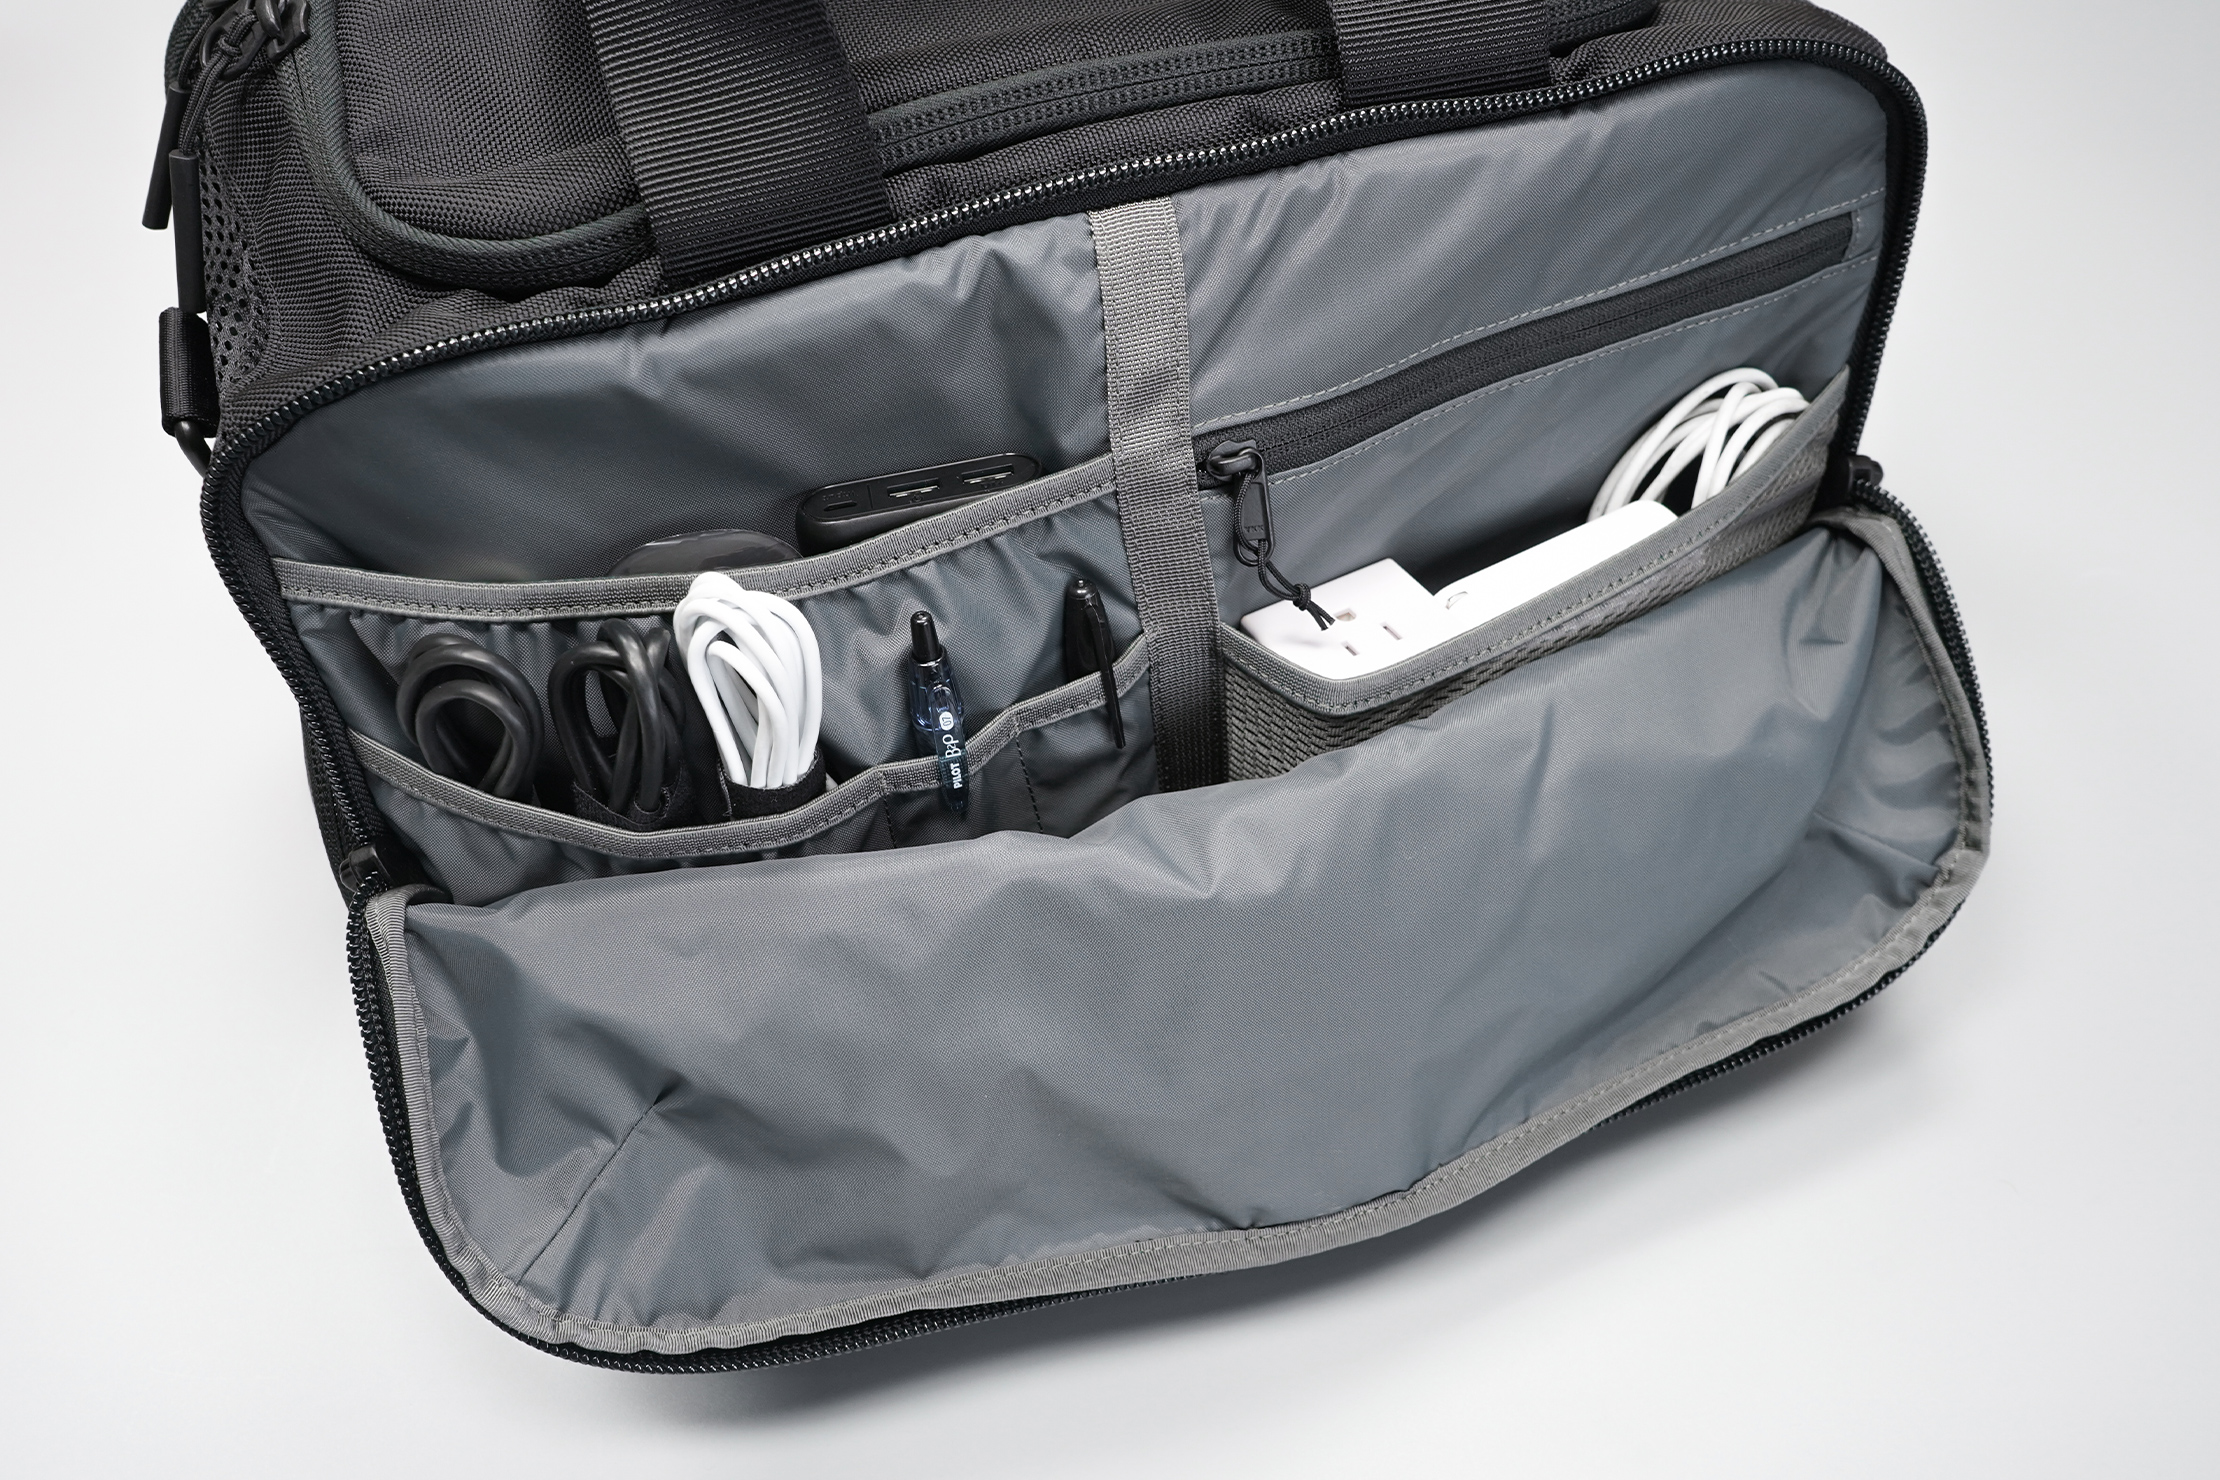 Aer Gym Duffel 3 tech organization